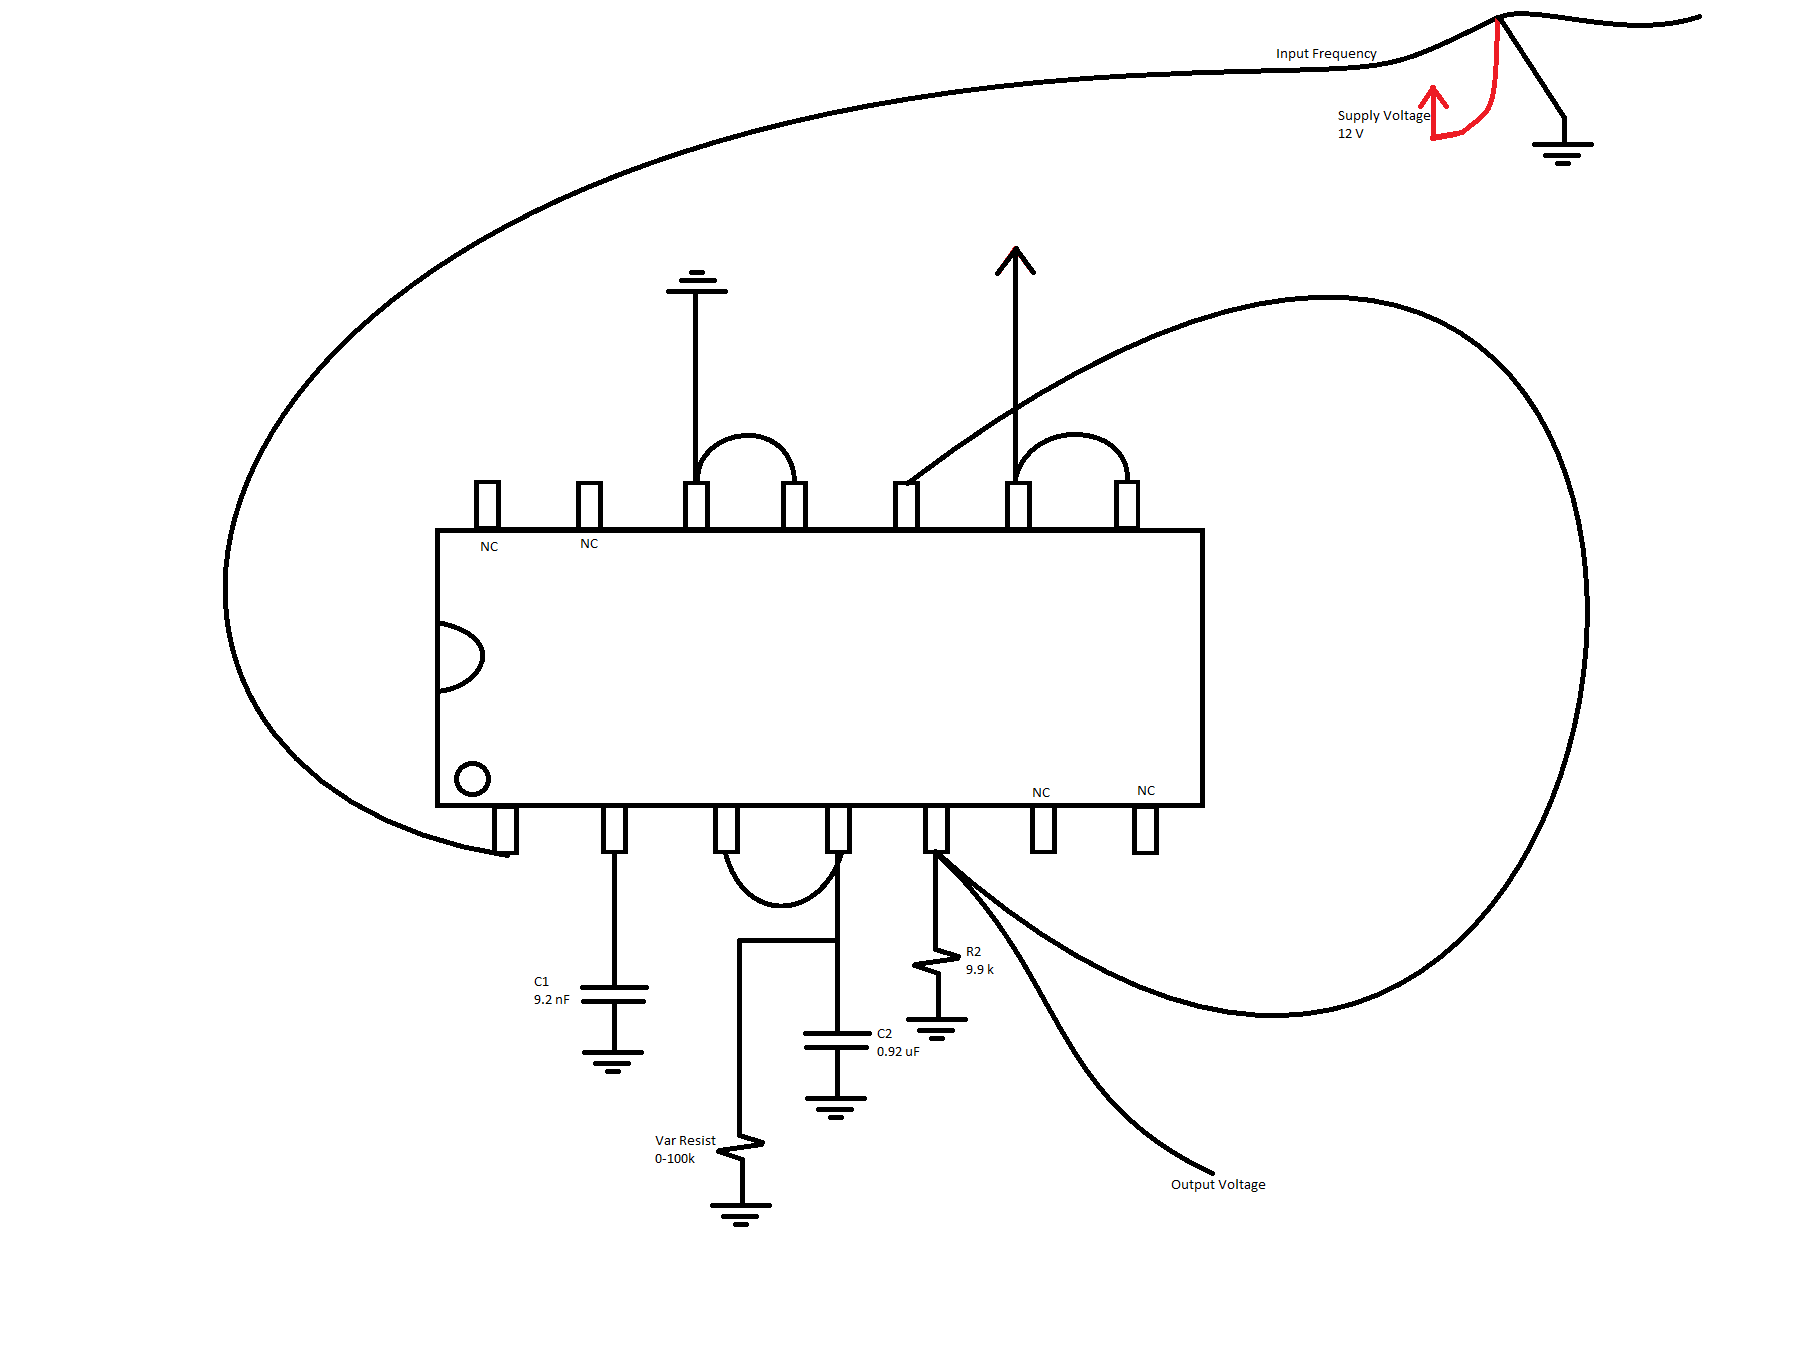 resolved  lm2907-n  creating a simple frequency to voltage converter circuit